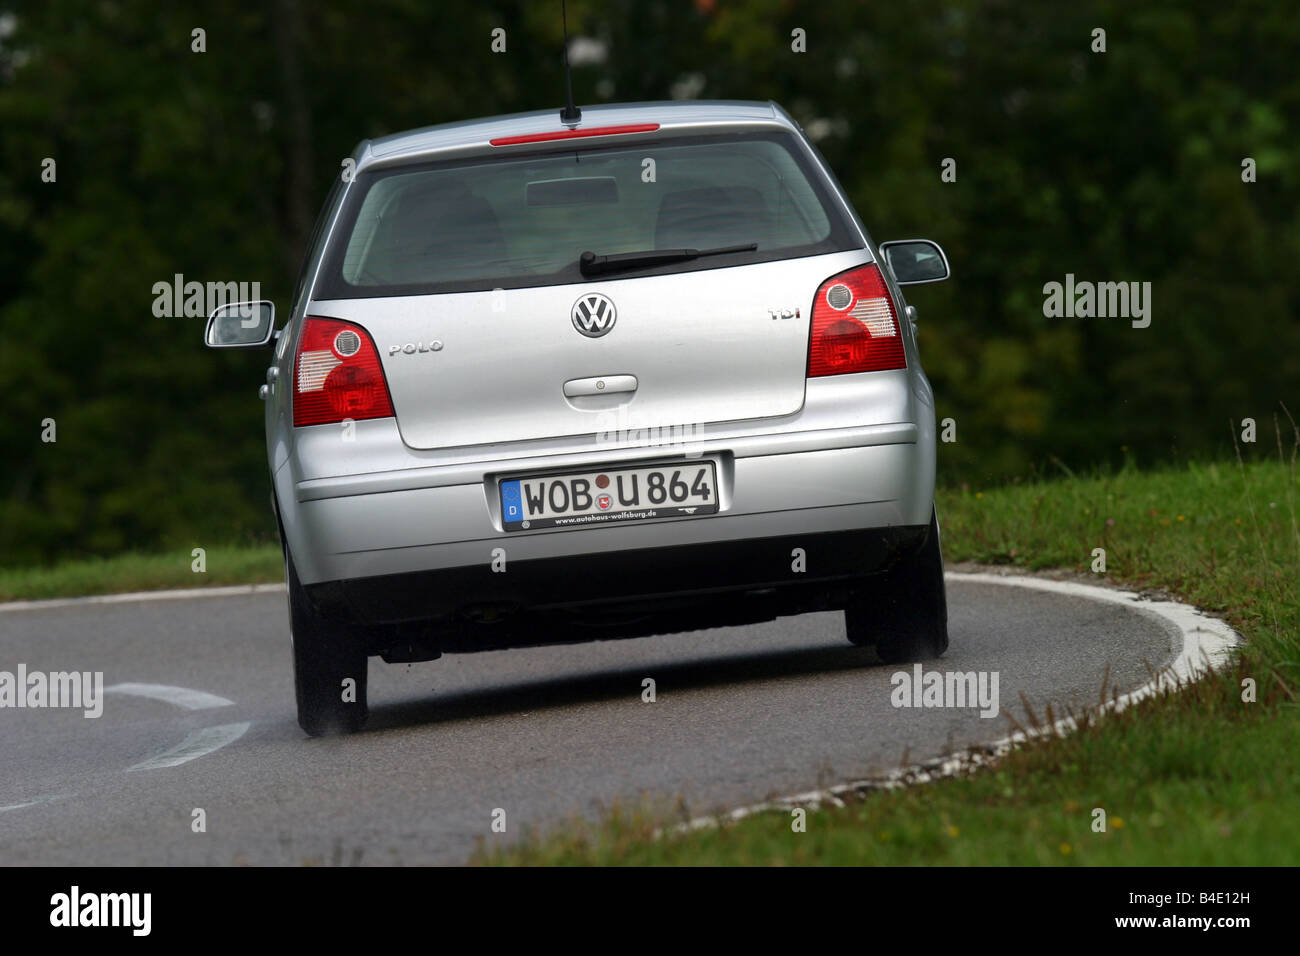 Car, VW Volkswagen Polo 1.4 TDI, small approx., Limousine, silver ...